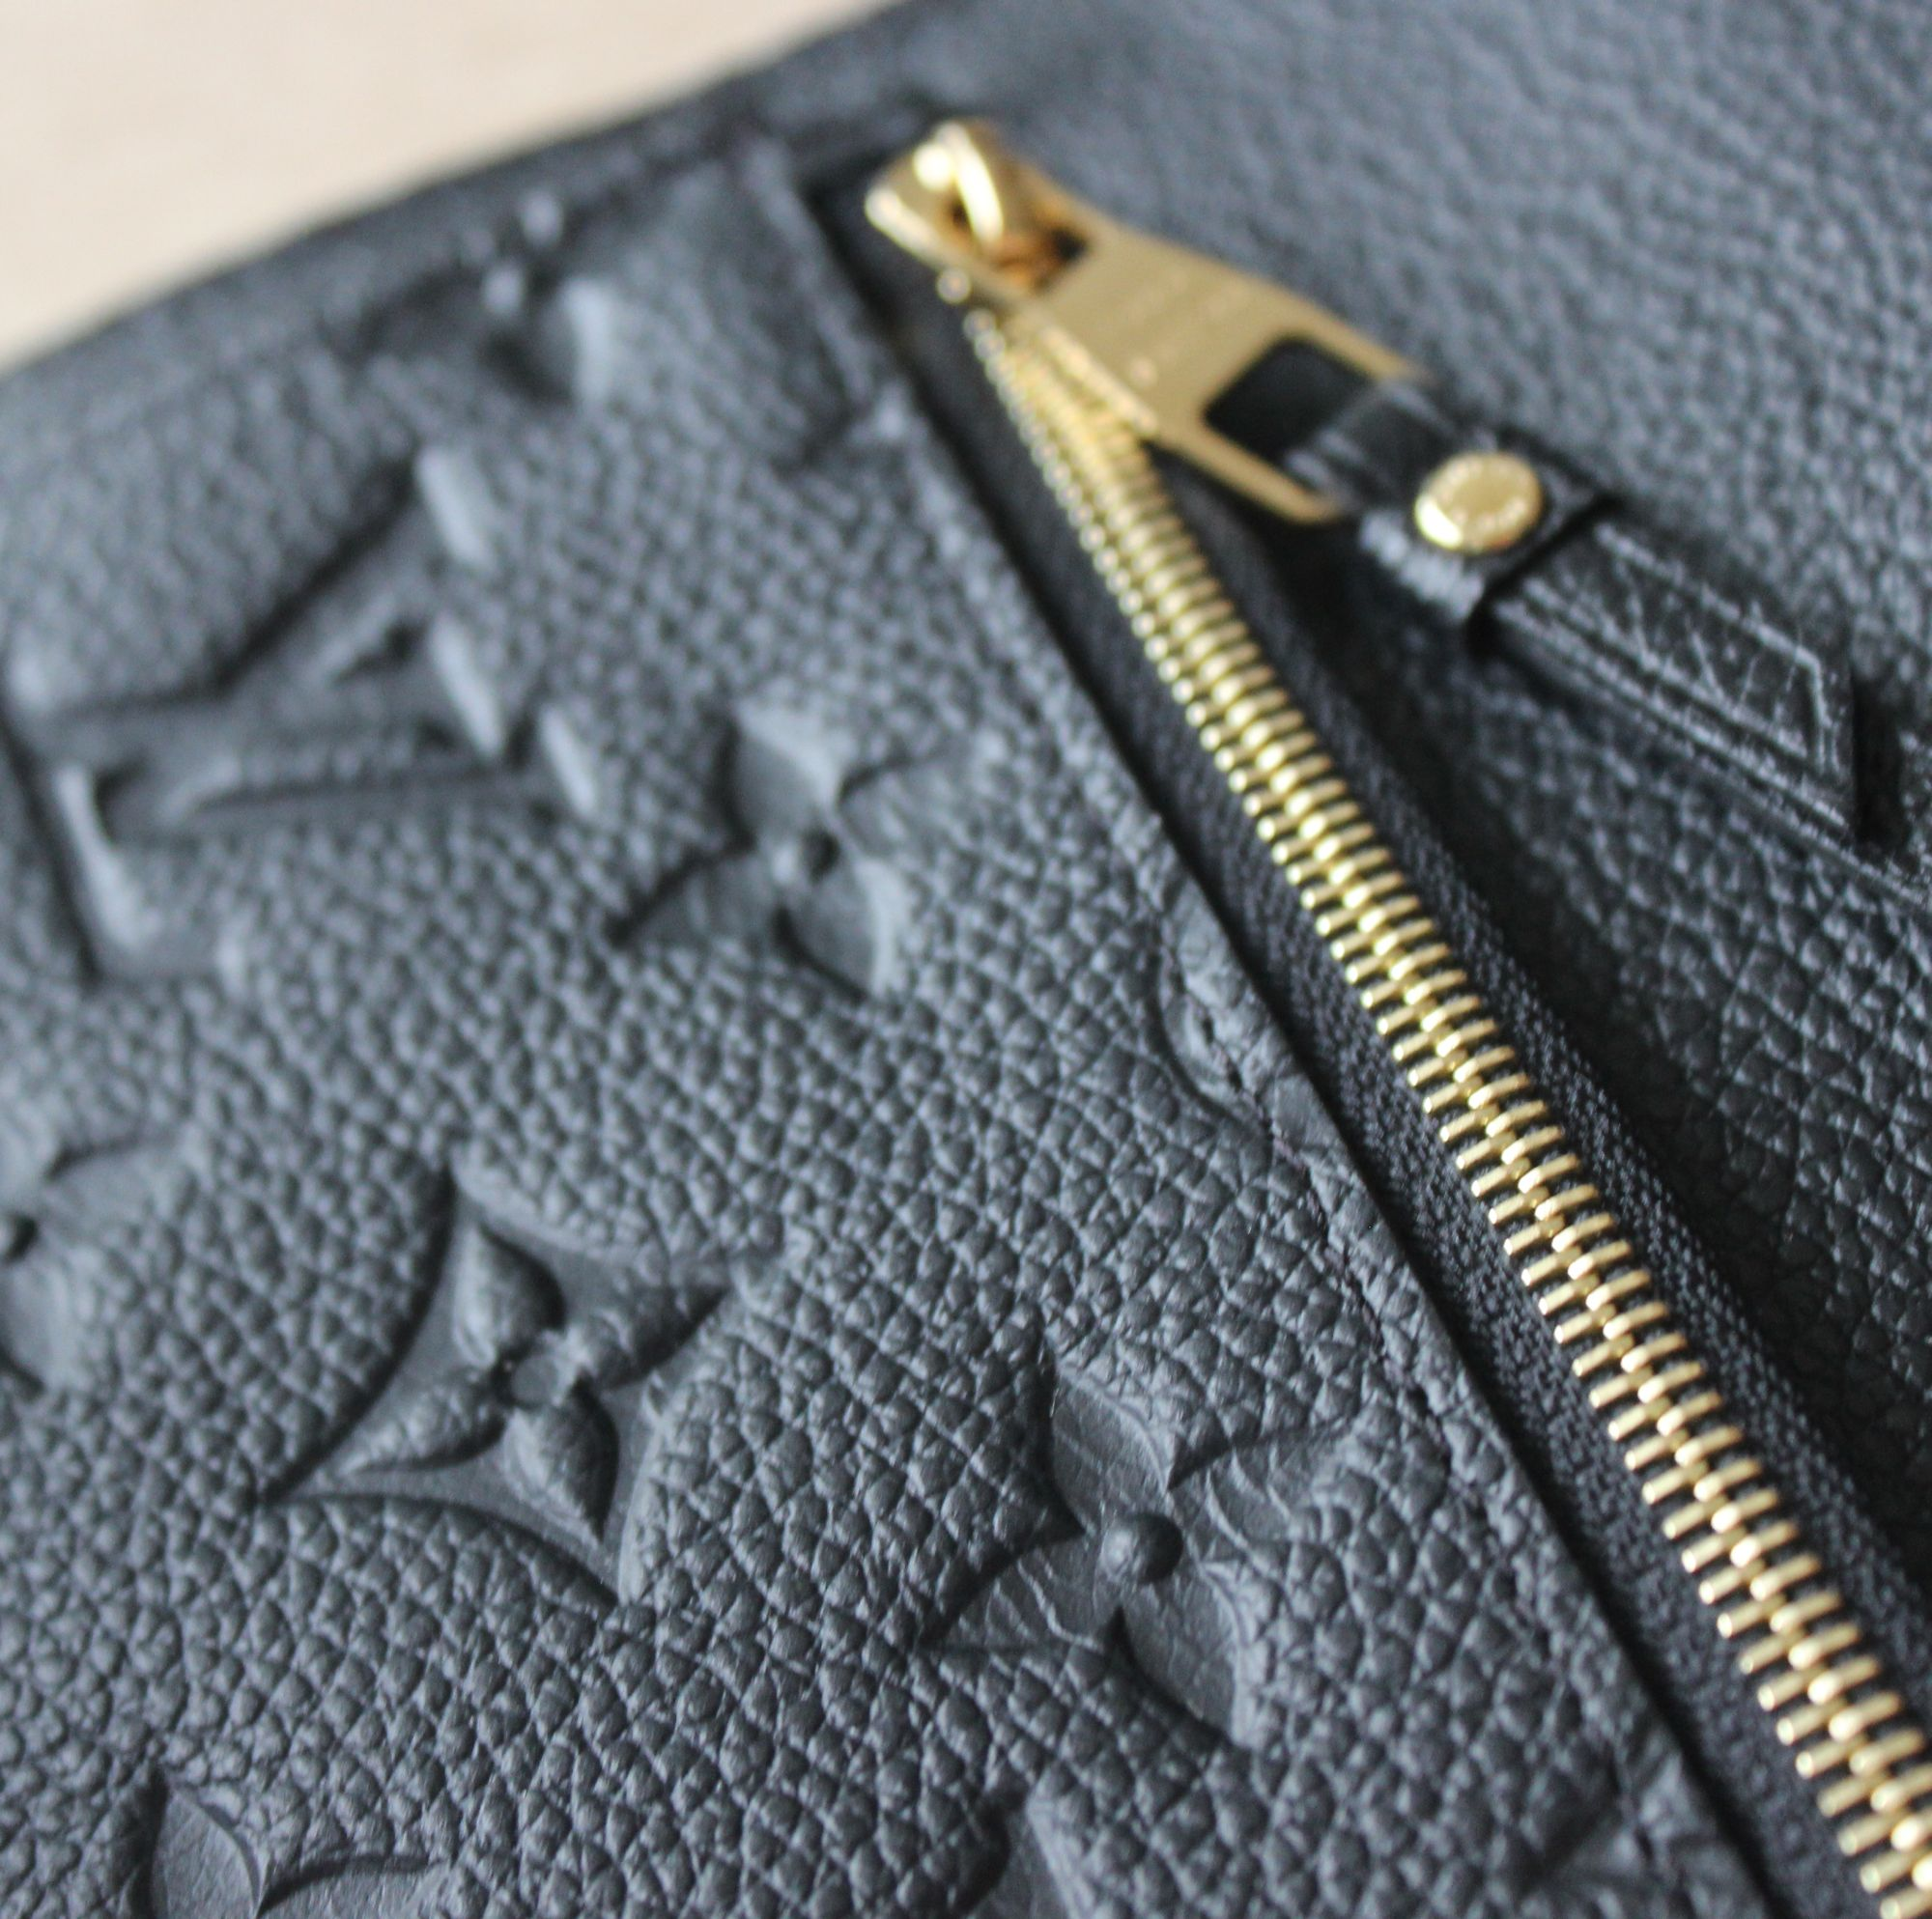 LV Compact Curieuse Wallet in Monogram Empreinte Leather 6